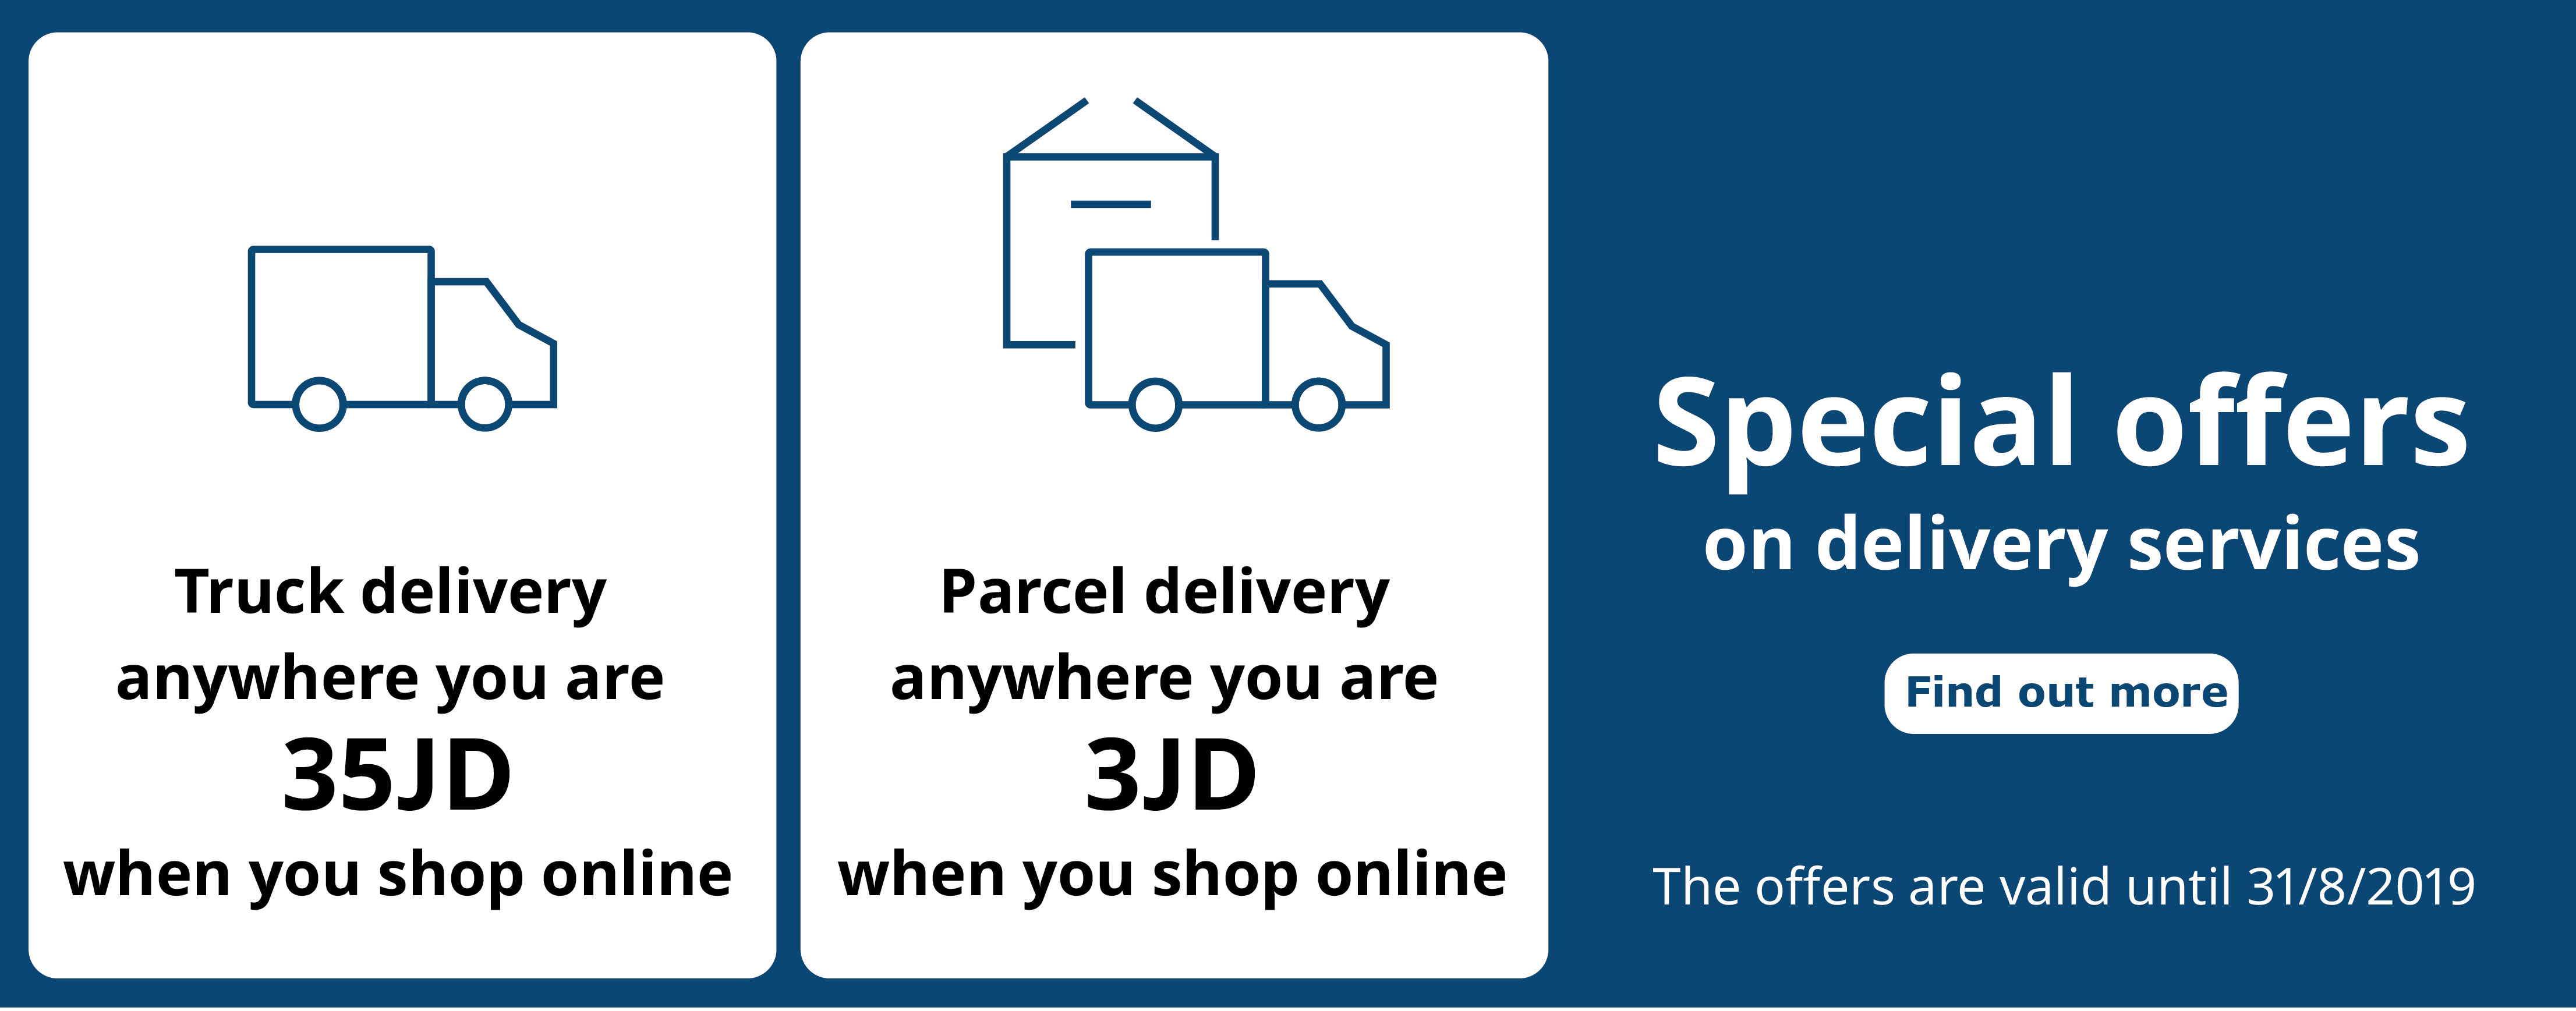 Special offers on delivery prices for online shopping !